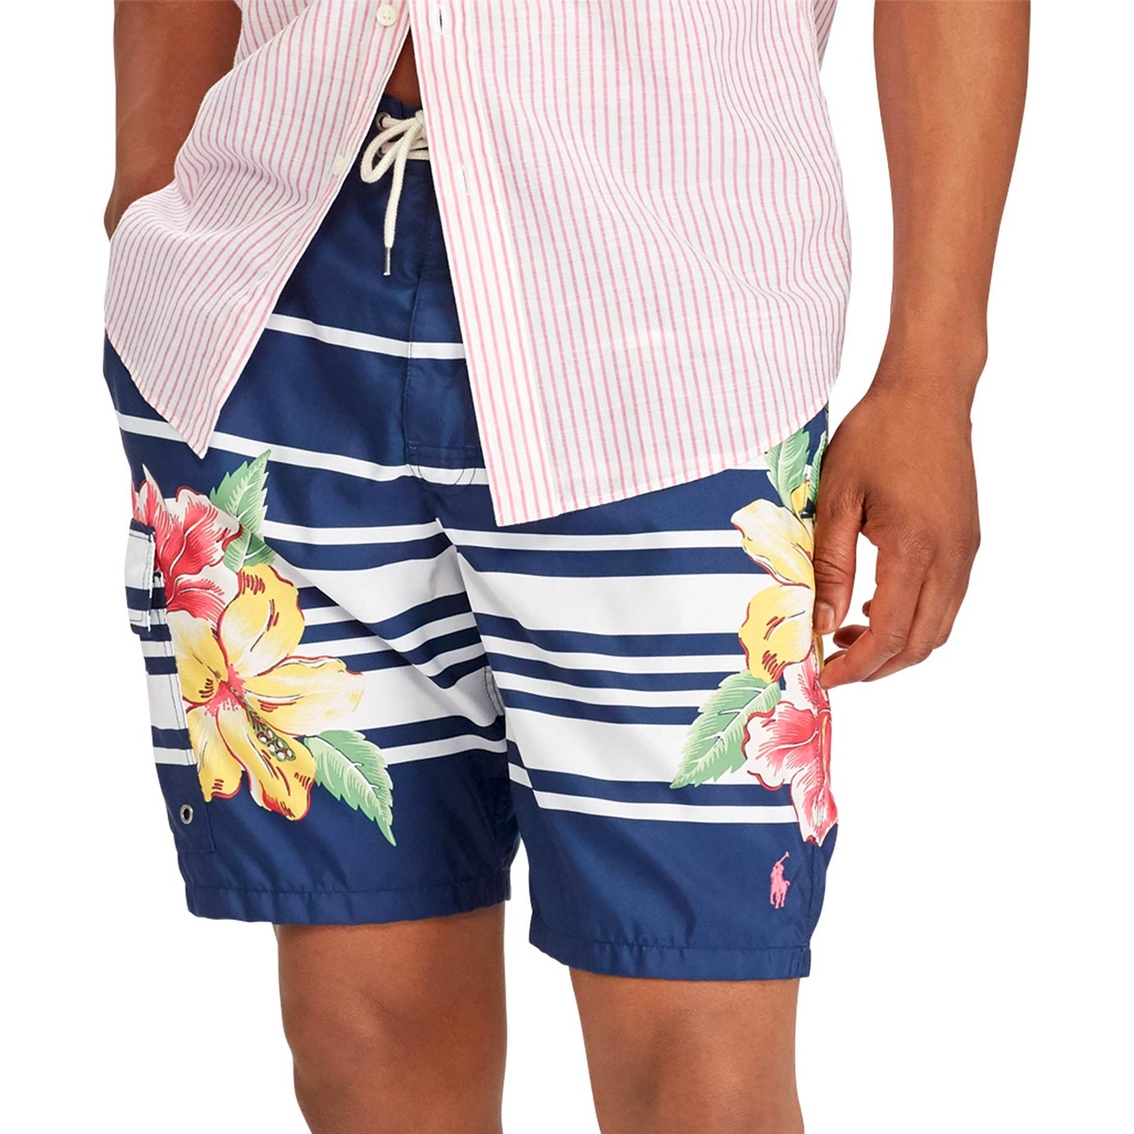 b4ff050179 Polo Ralph Lauren 8.5 In. Kailua Swim Trunk | Polo Ralph Lauren ...